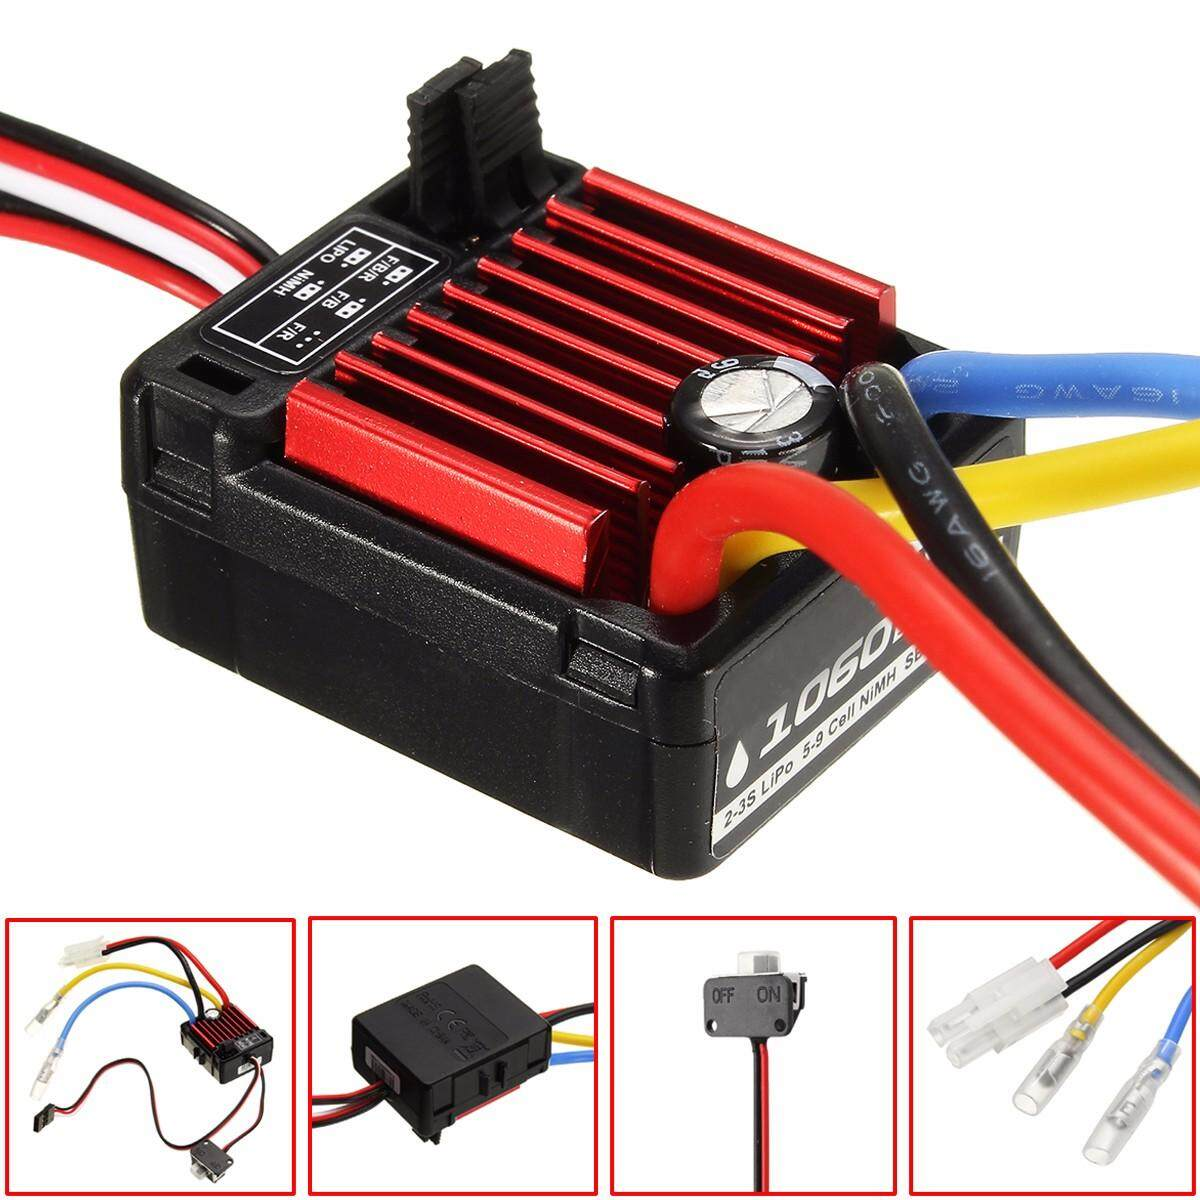 Who Sells Hobbywing Quicrun 1 10 Waterproof Brushed 60A Esc 4Wd Rc Car Buggy Touring 1060 Intl The Cheapest